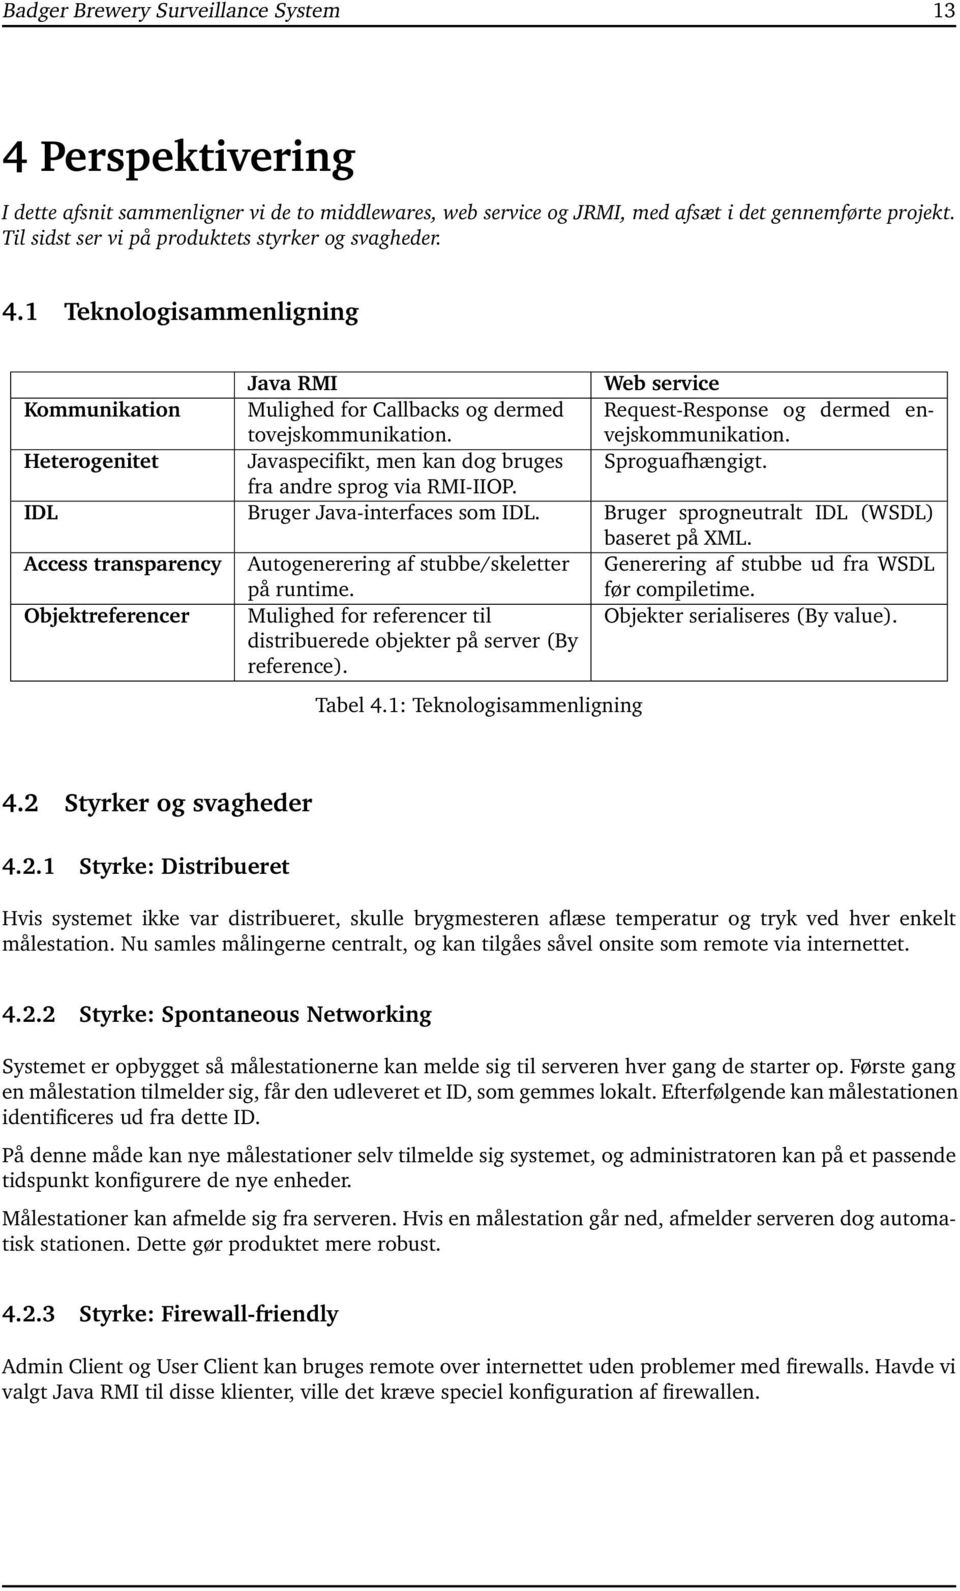 Request-Response og dermed envejskommunikation. Heterogenitet Javaspecifikt, men kan dog bruges Sproguafhængigt. fra andre sprog via RMI-IIOP. IDL Bruger Java-interfaces som IDL.